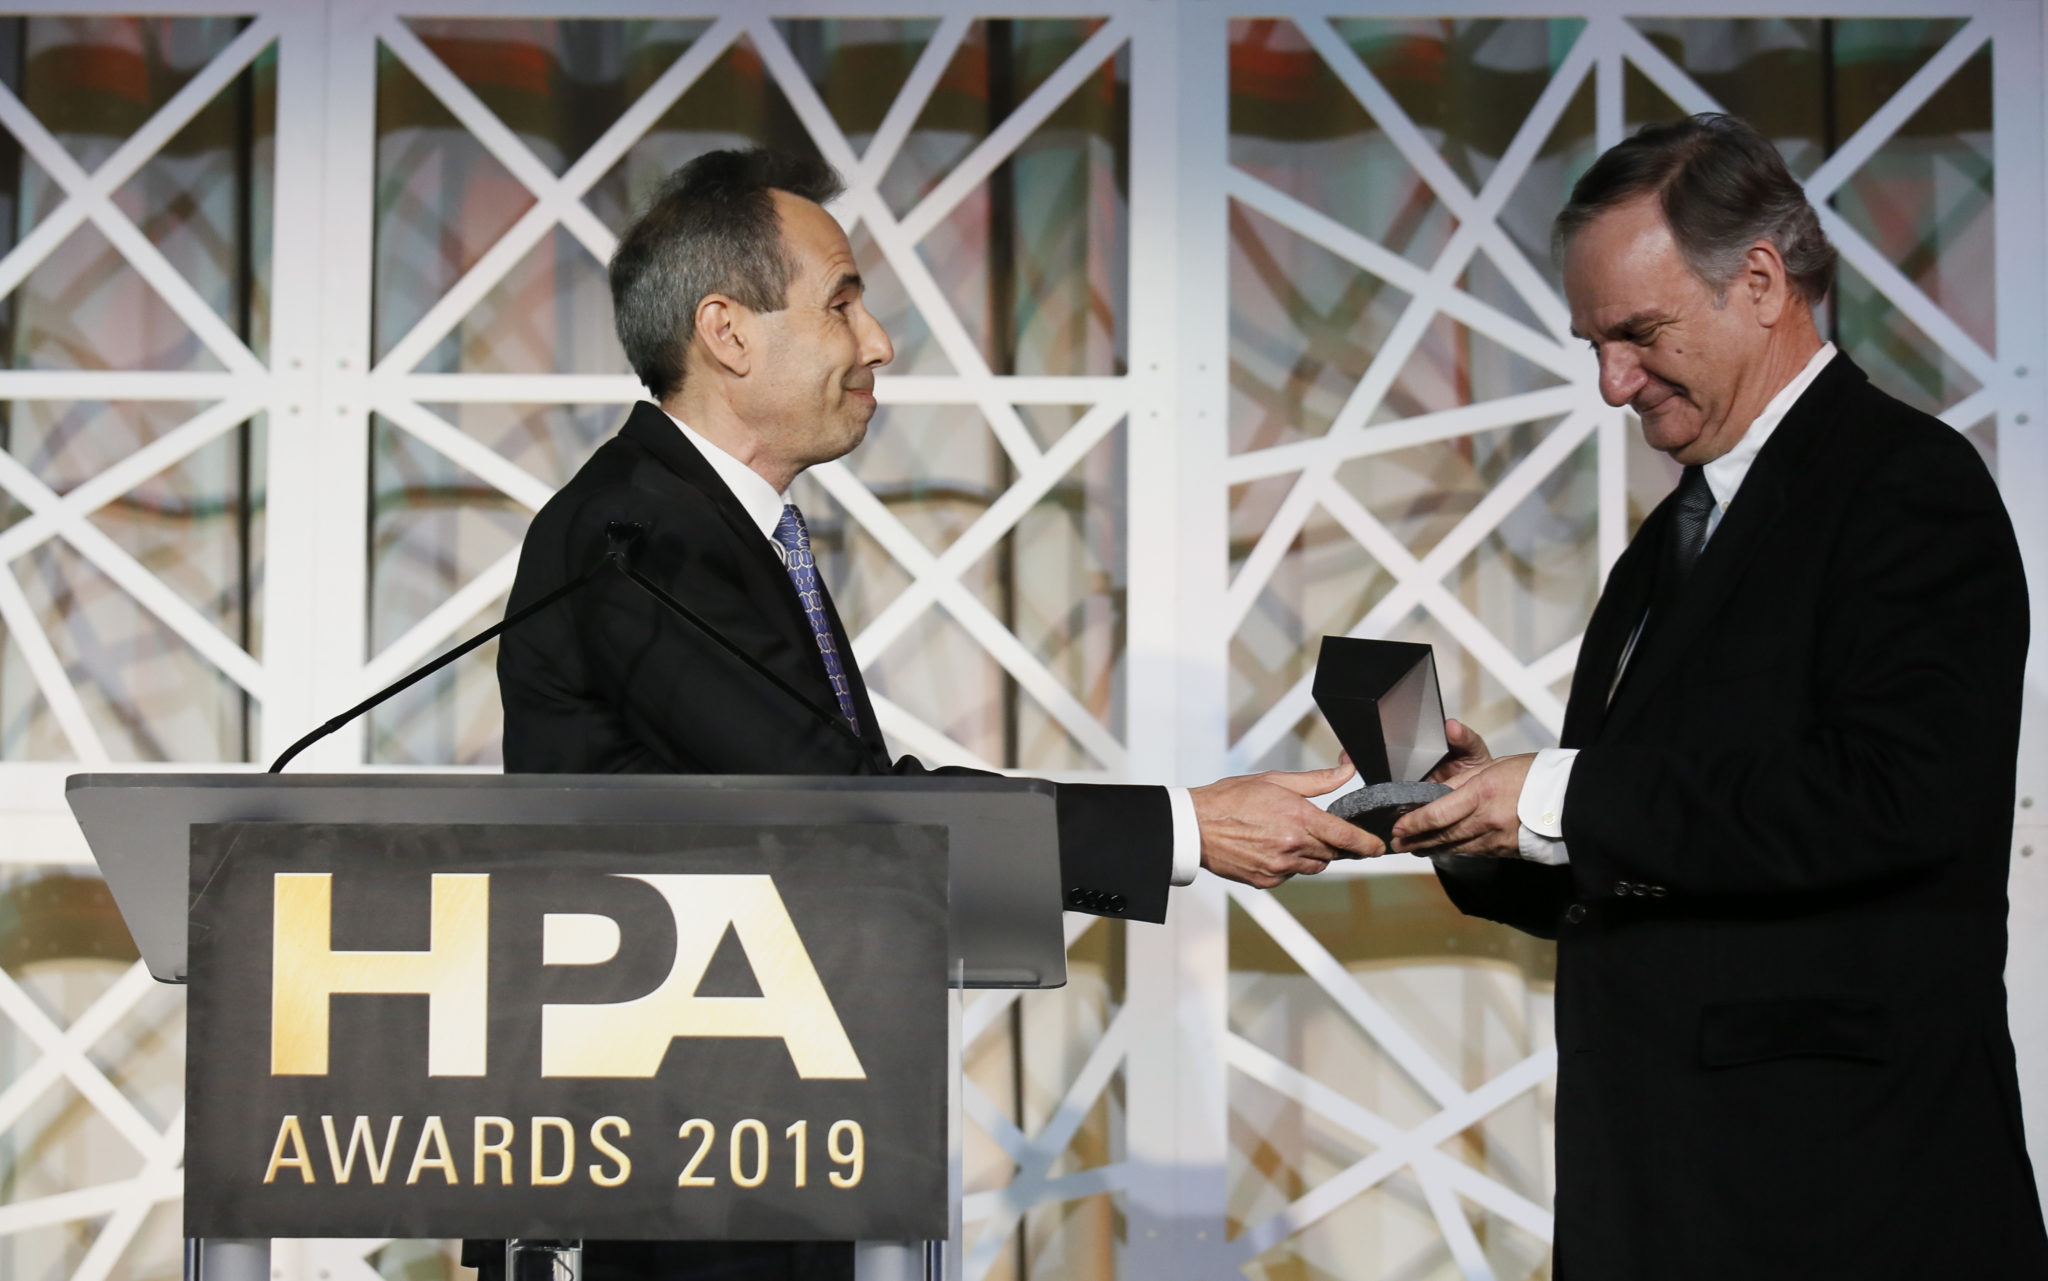 Robert Legato, ASC, receives the HPA's Lifetime Achievement Award.